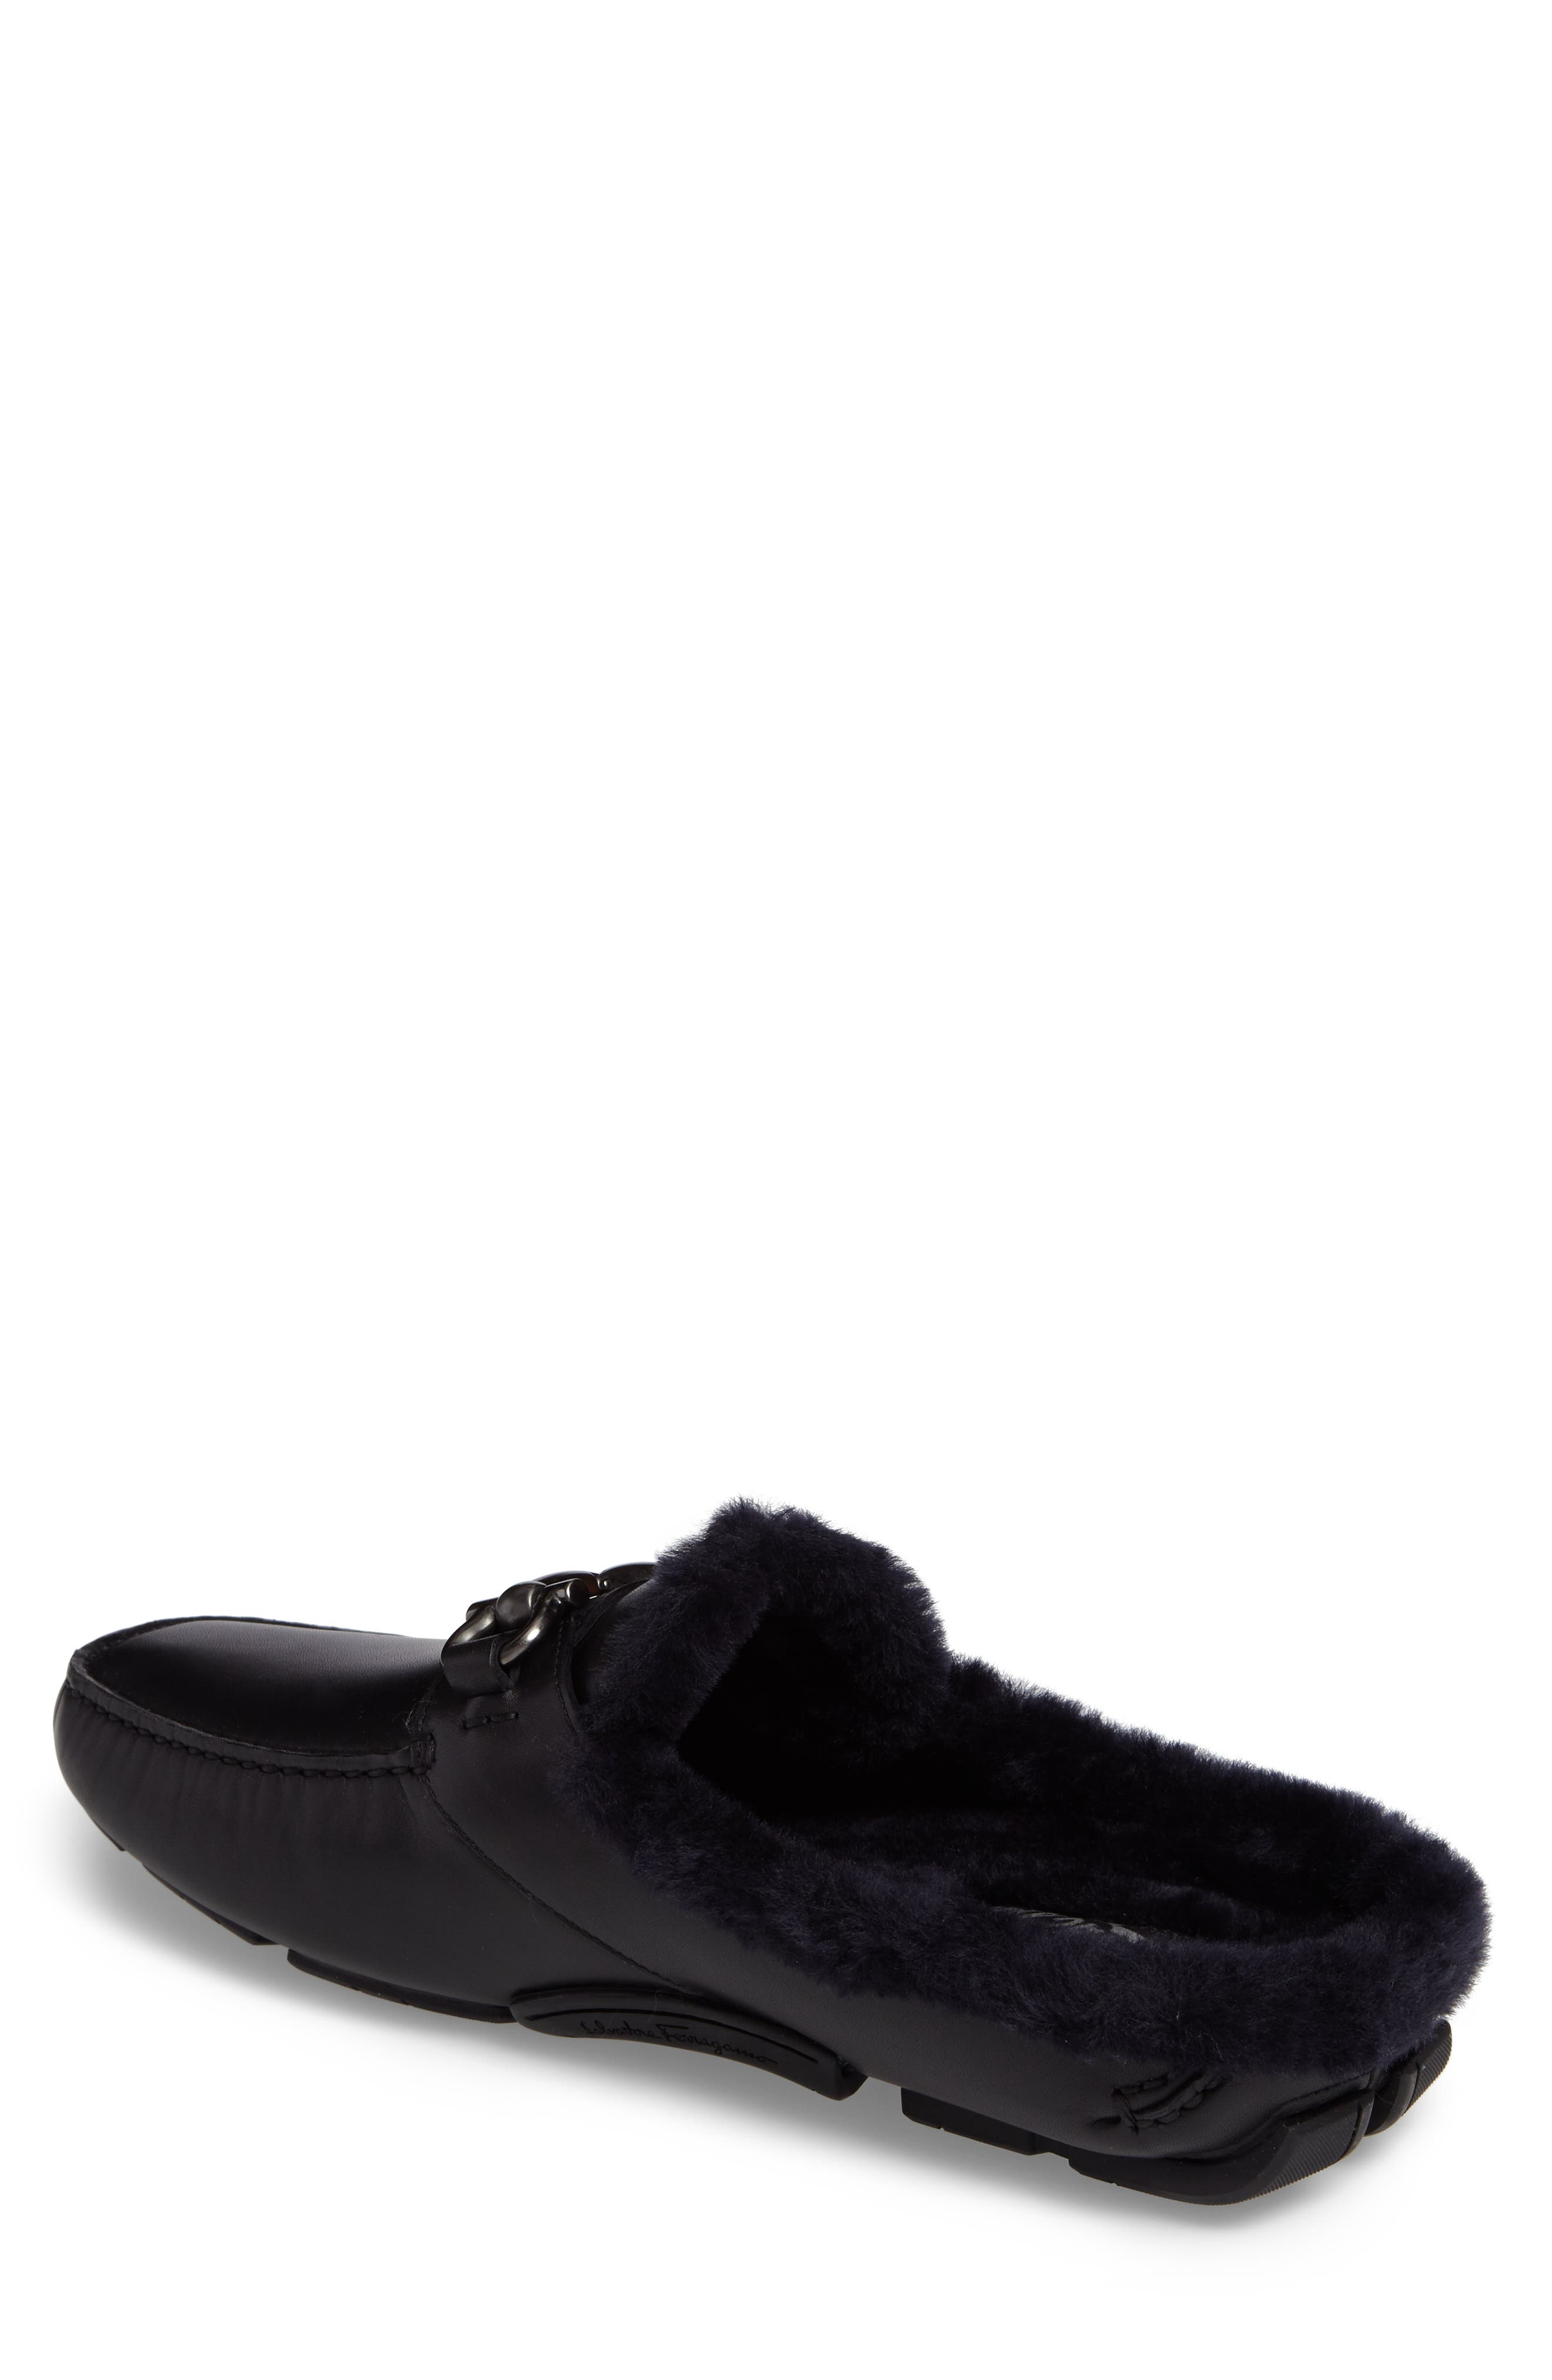 Alternate Image 2  - Salvatore Ferragamo Driving Loafer with Genuine Shearling (Men)